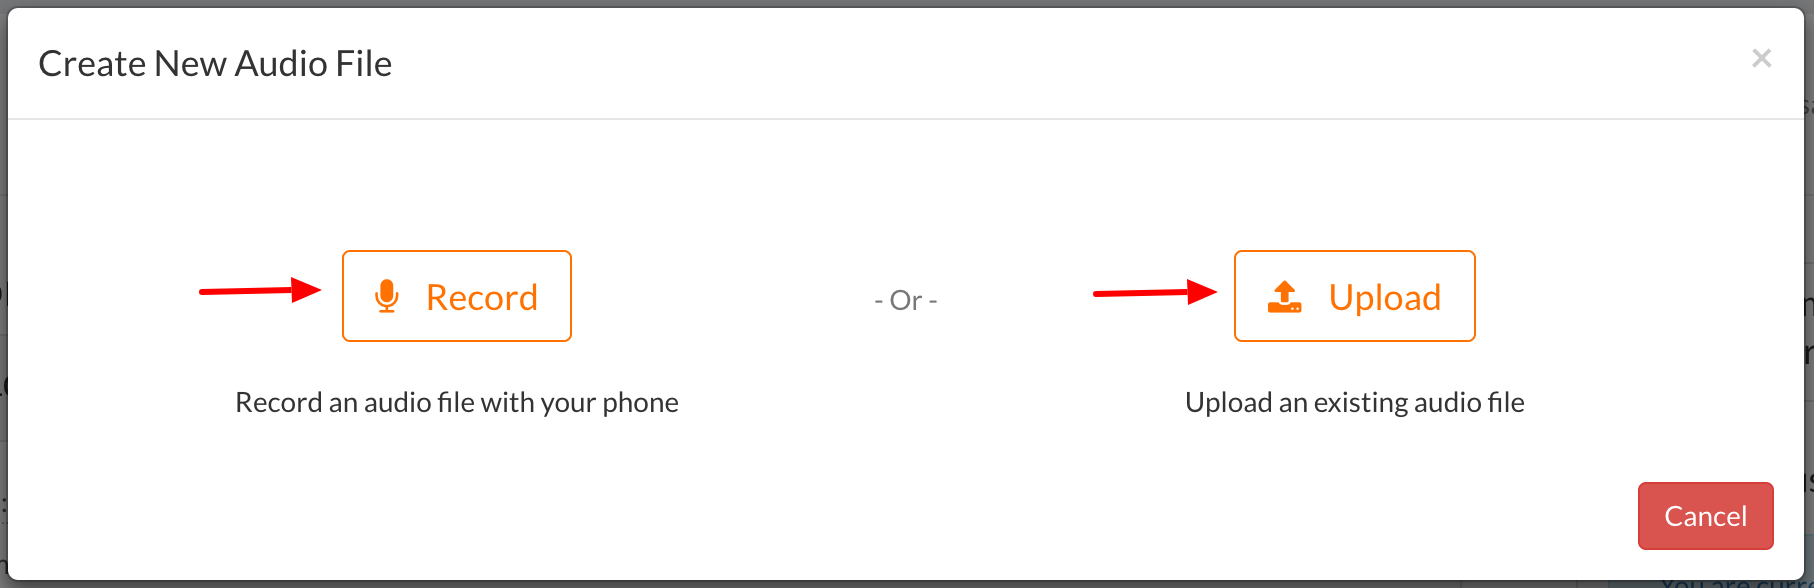 How To Change The Voicemail Greeting Talkroute Support